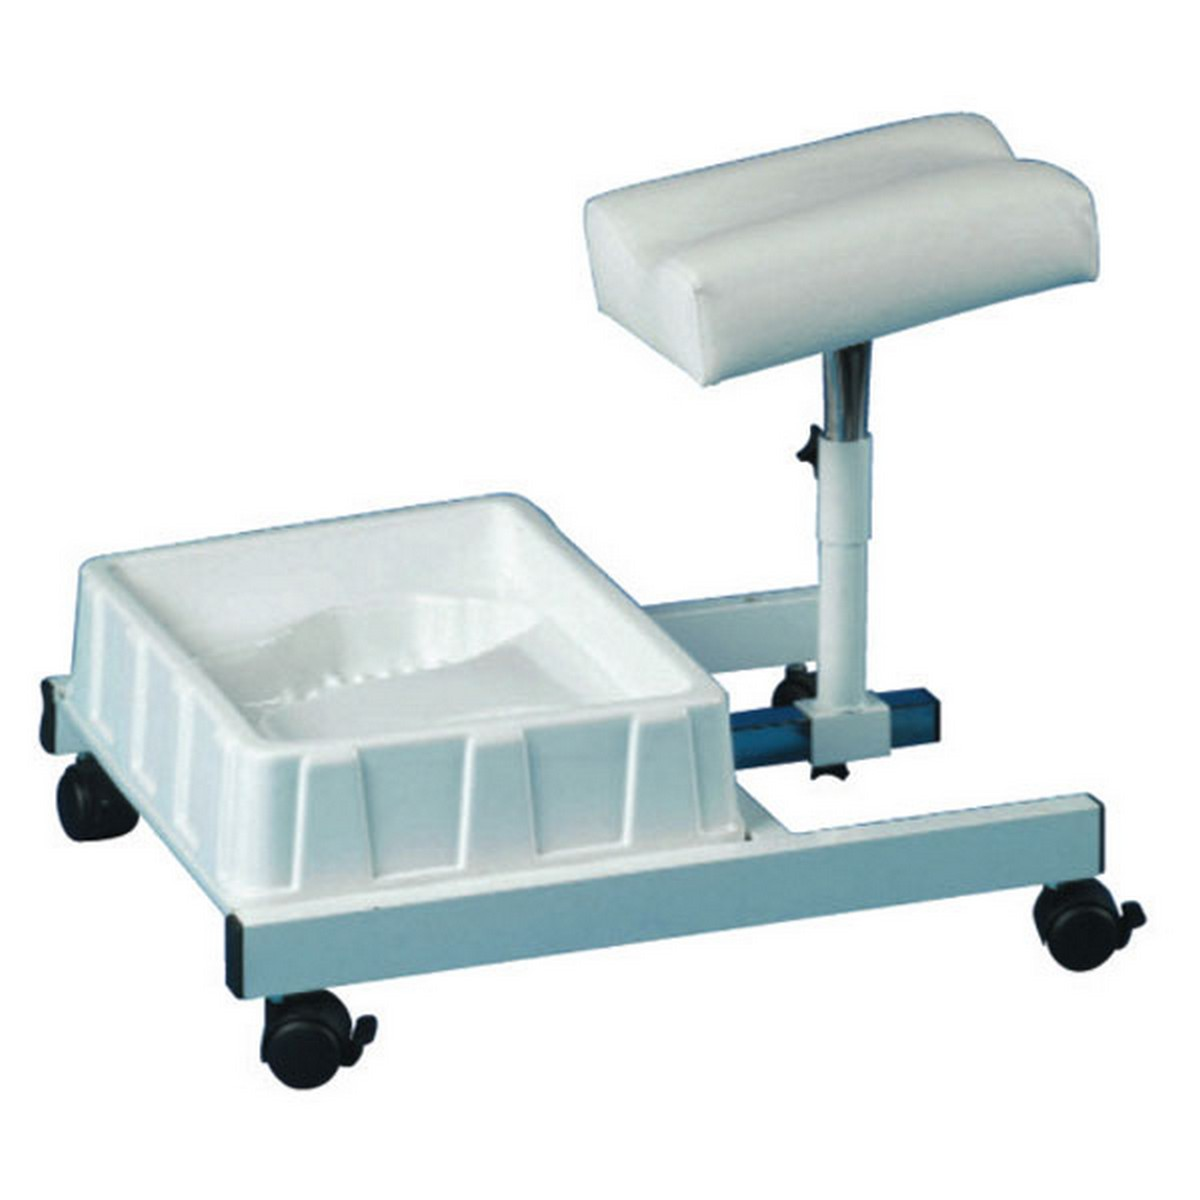 Pedicure Chairs For Sale Online Uk